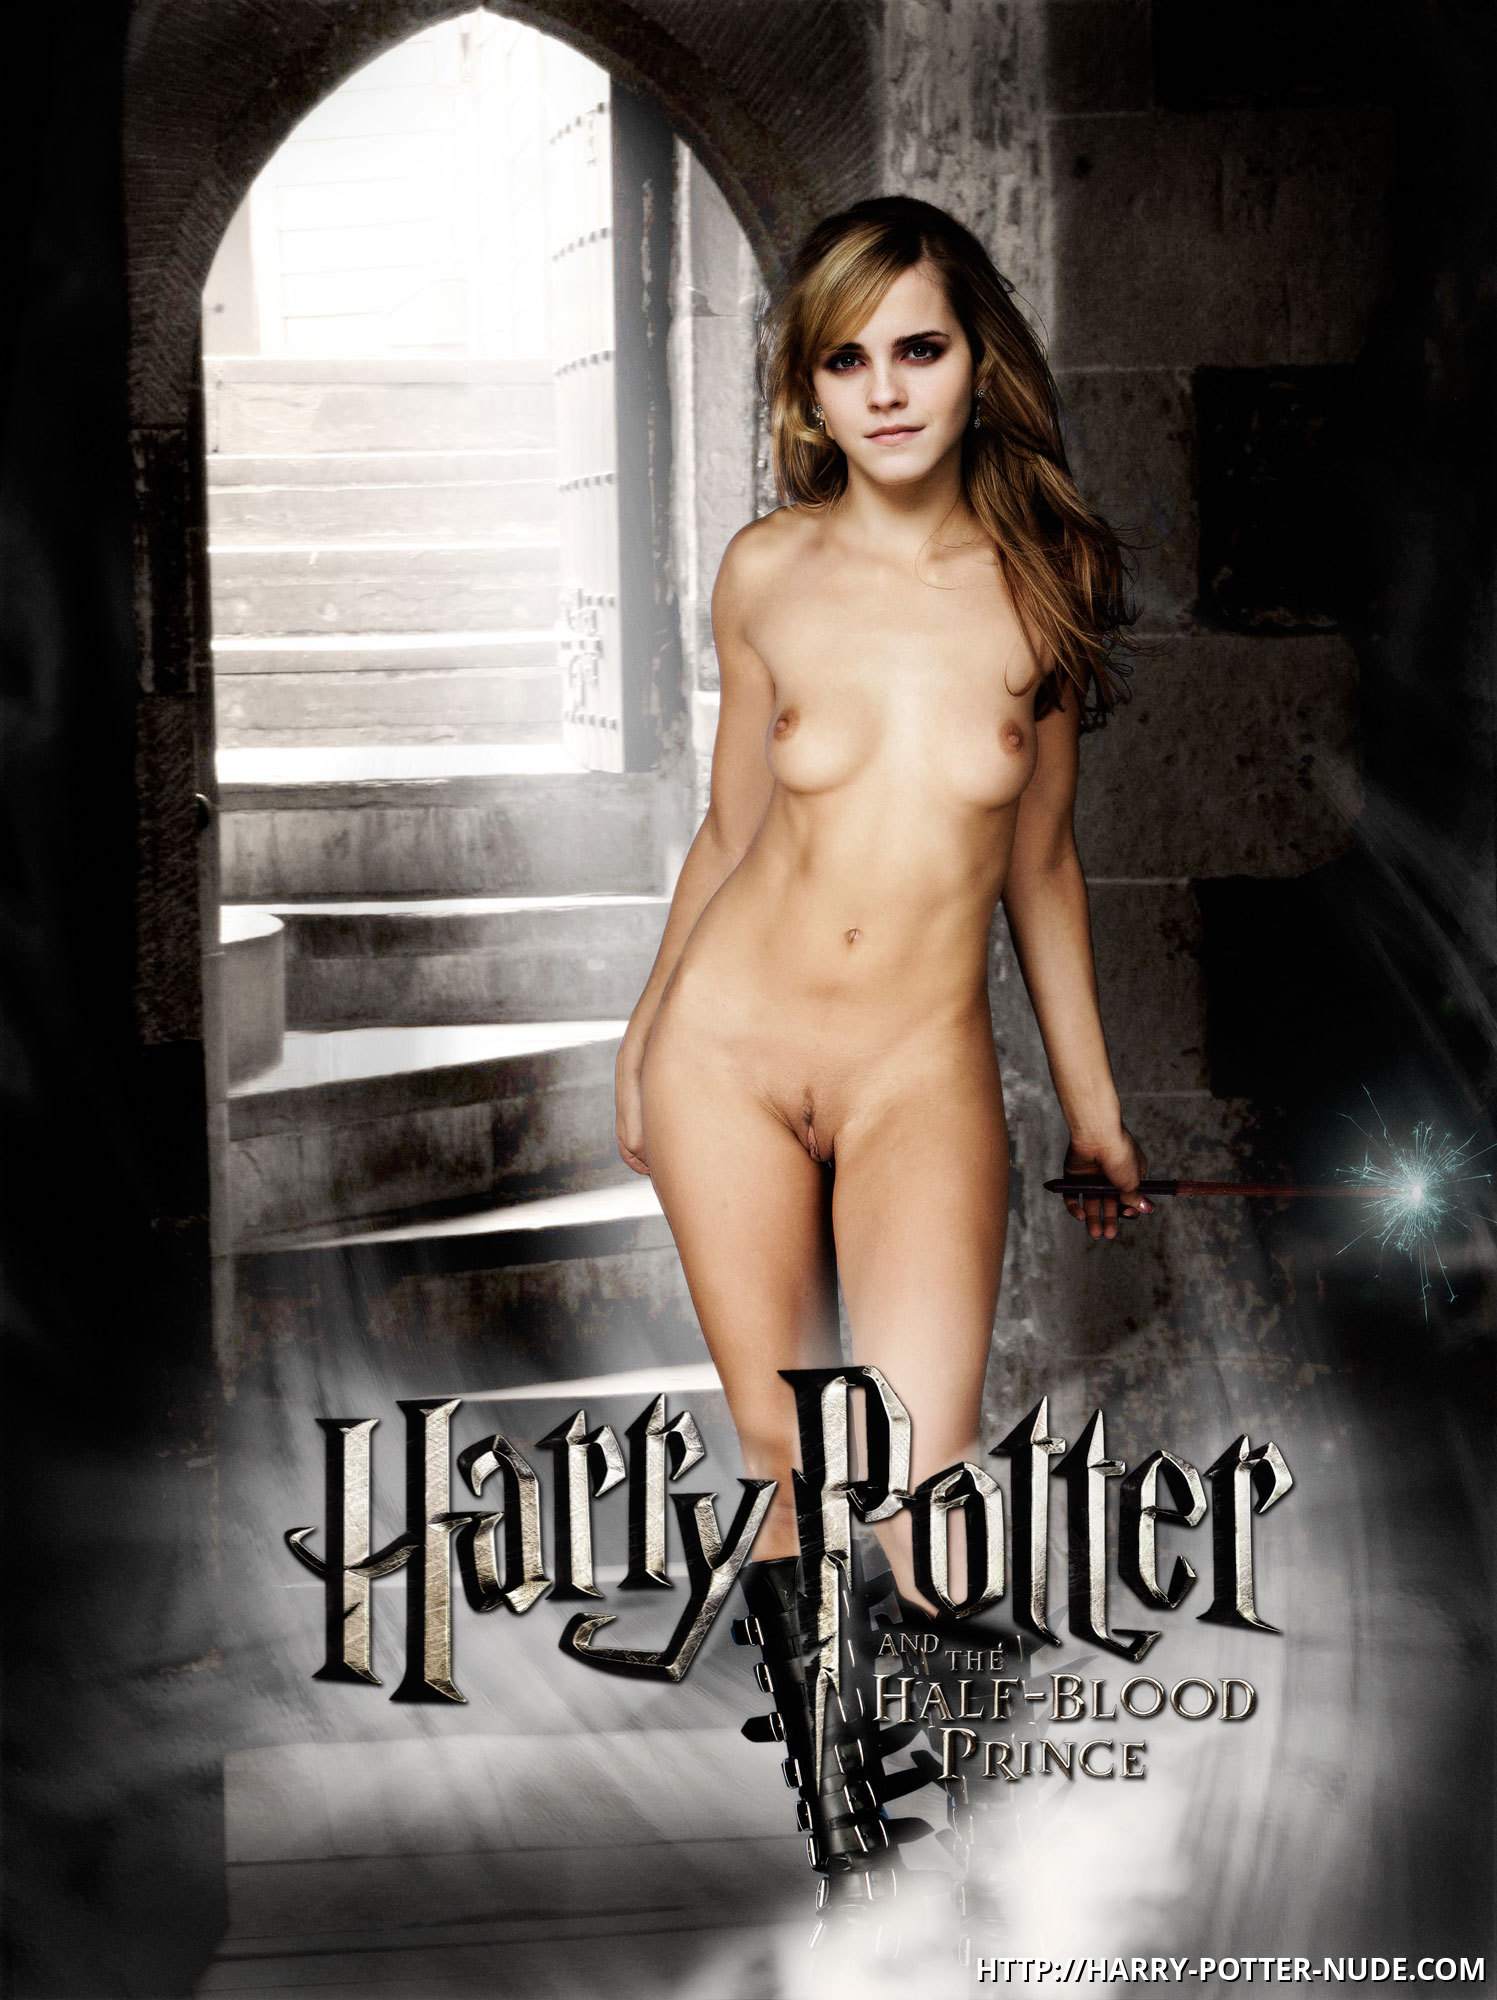 Hermione Jean Granger is ready to perform some naughty magic!